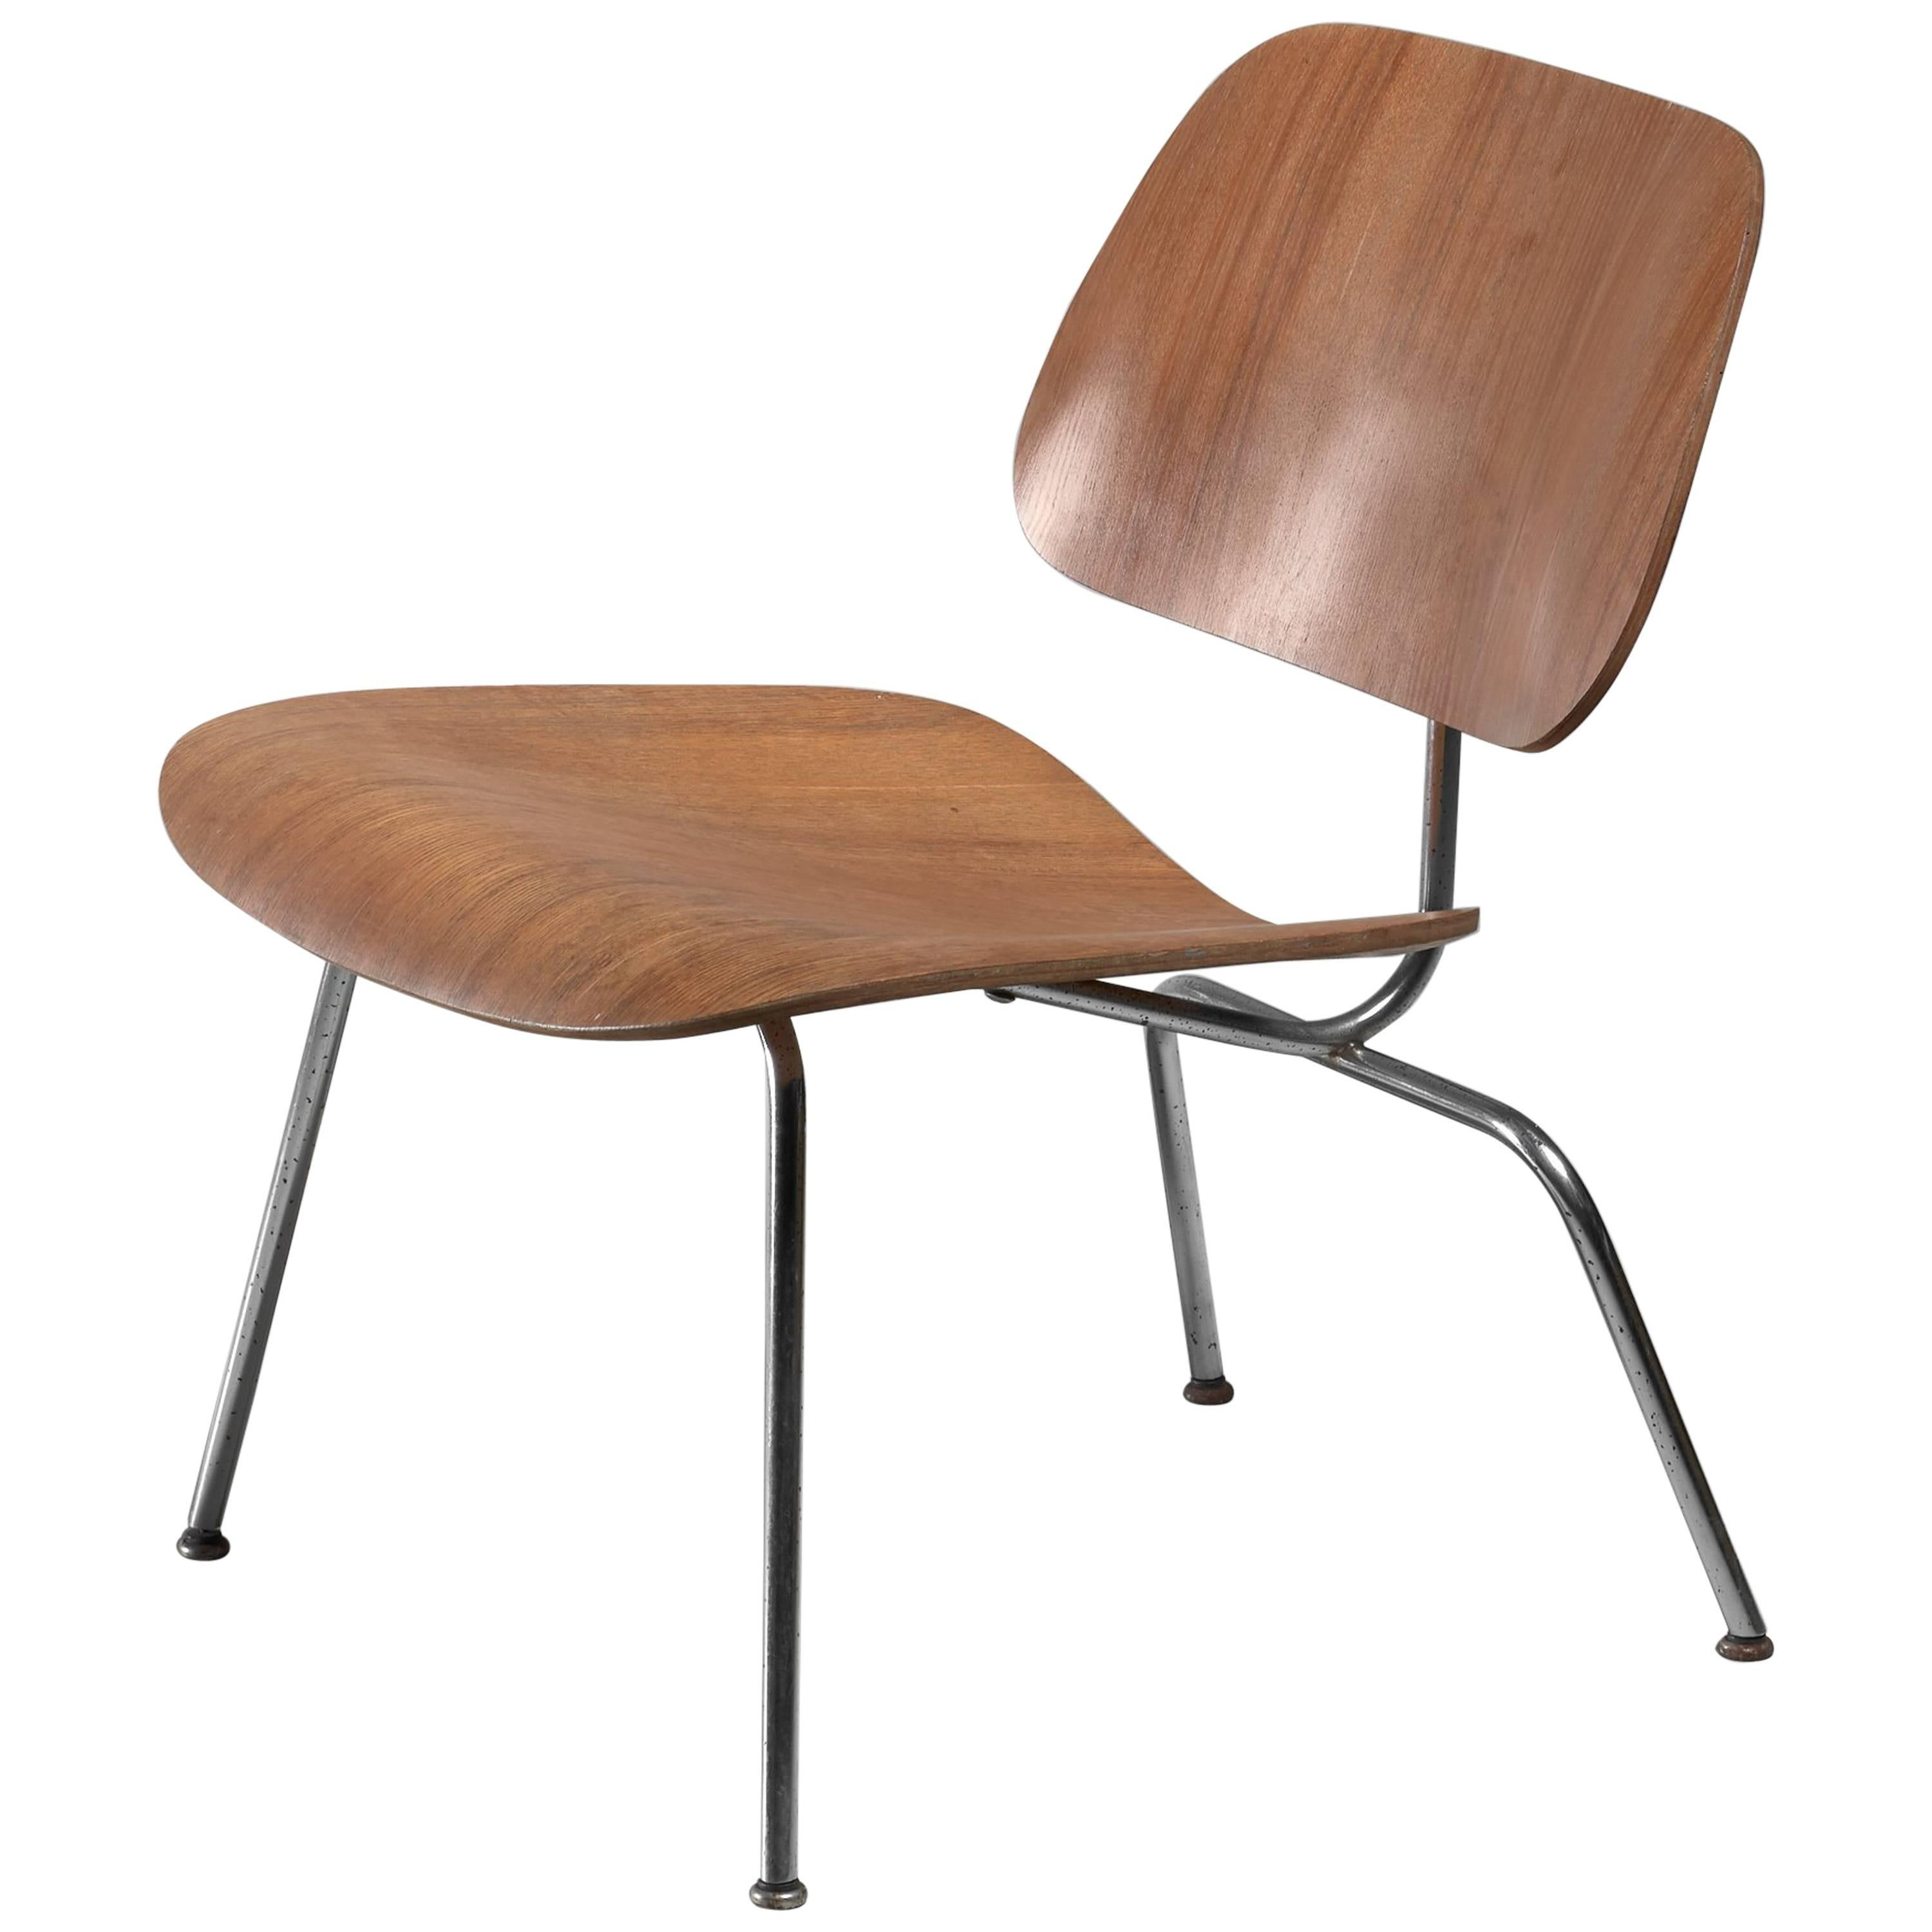 LCM Chair In Walnut By Charles Eames For Herman Miller, 1950s For Sale